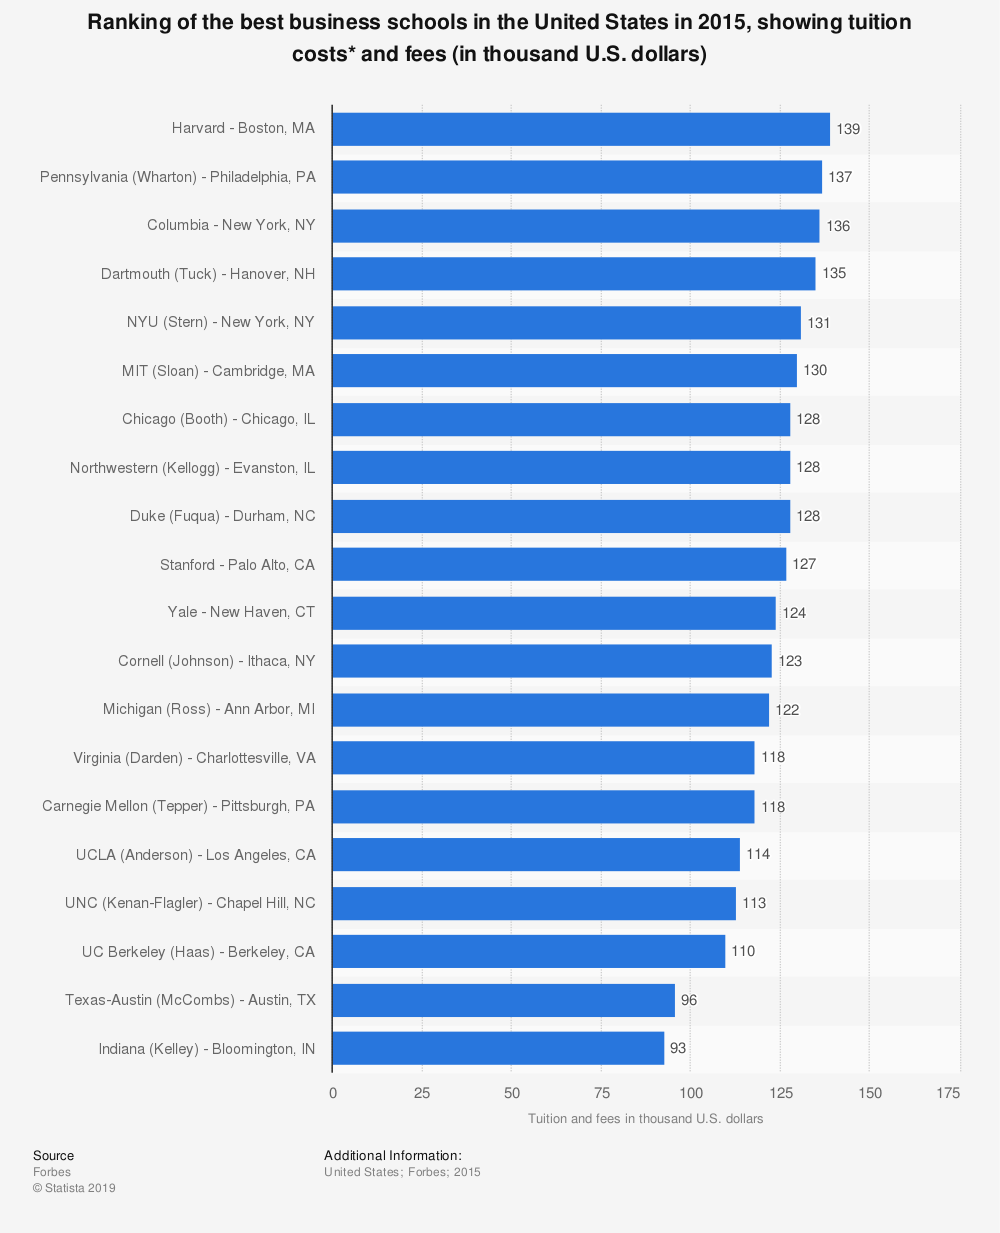 Statistic: Ranking of the best business schools in the United States in 2015, showing tuition costs* and fees (in thousand U.S. dollars) | Statista